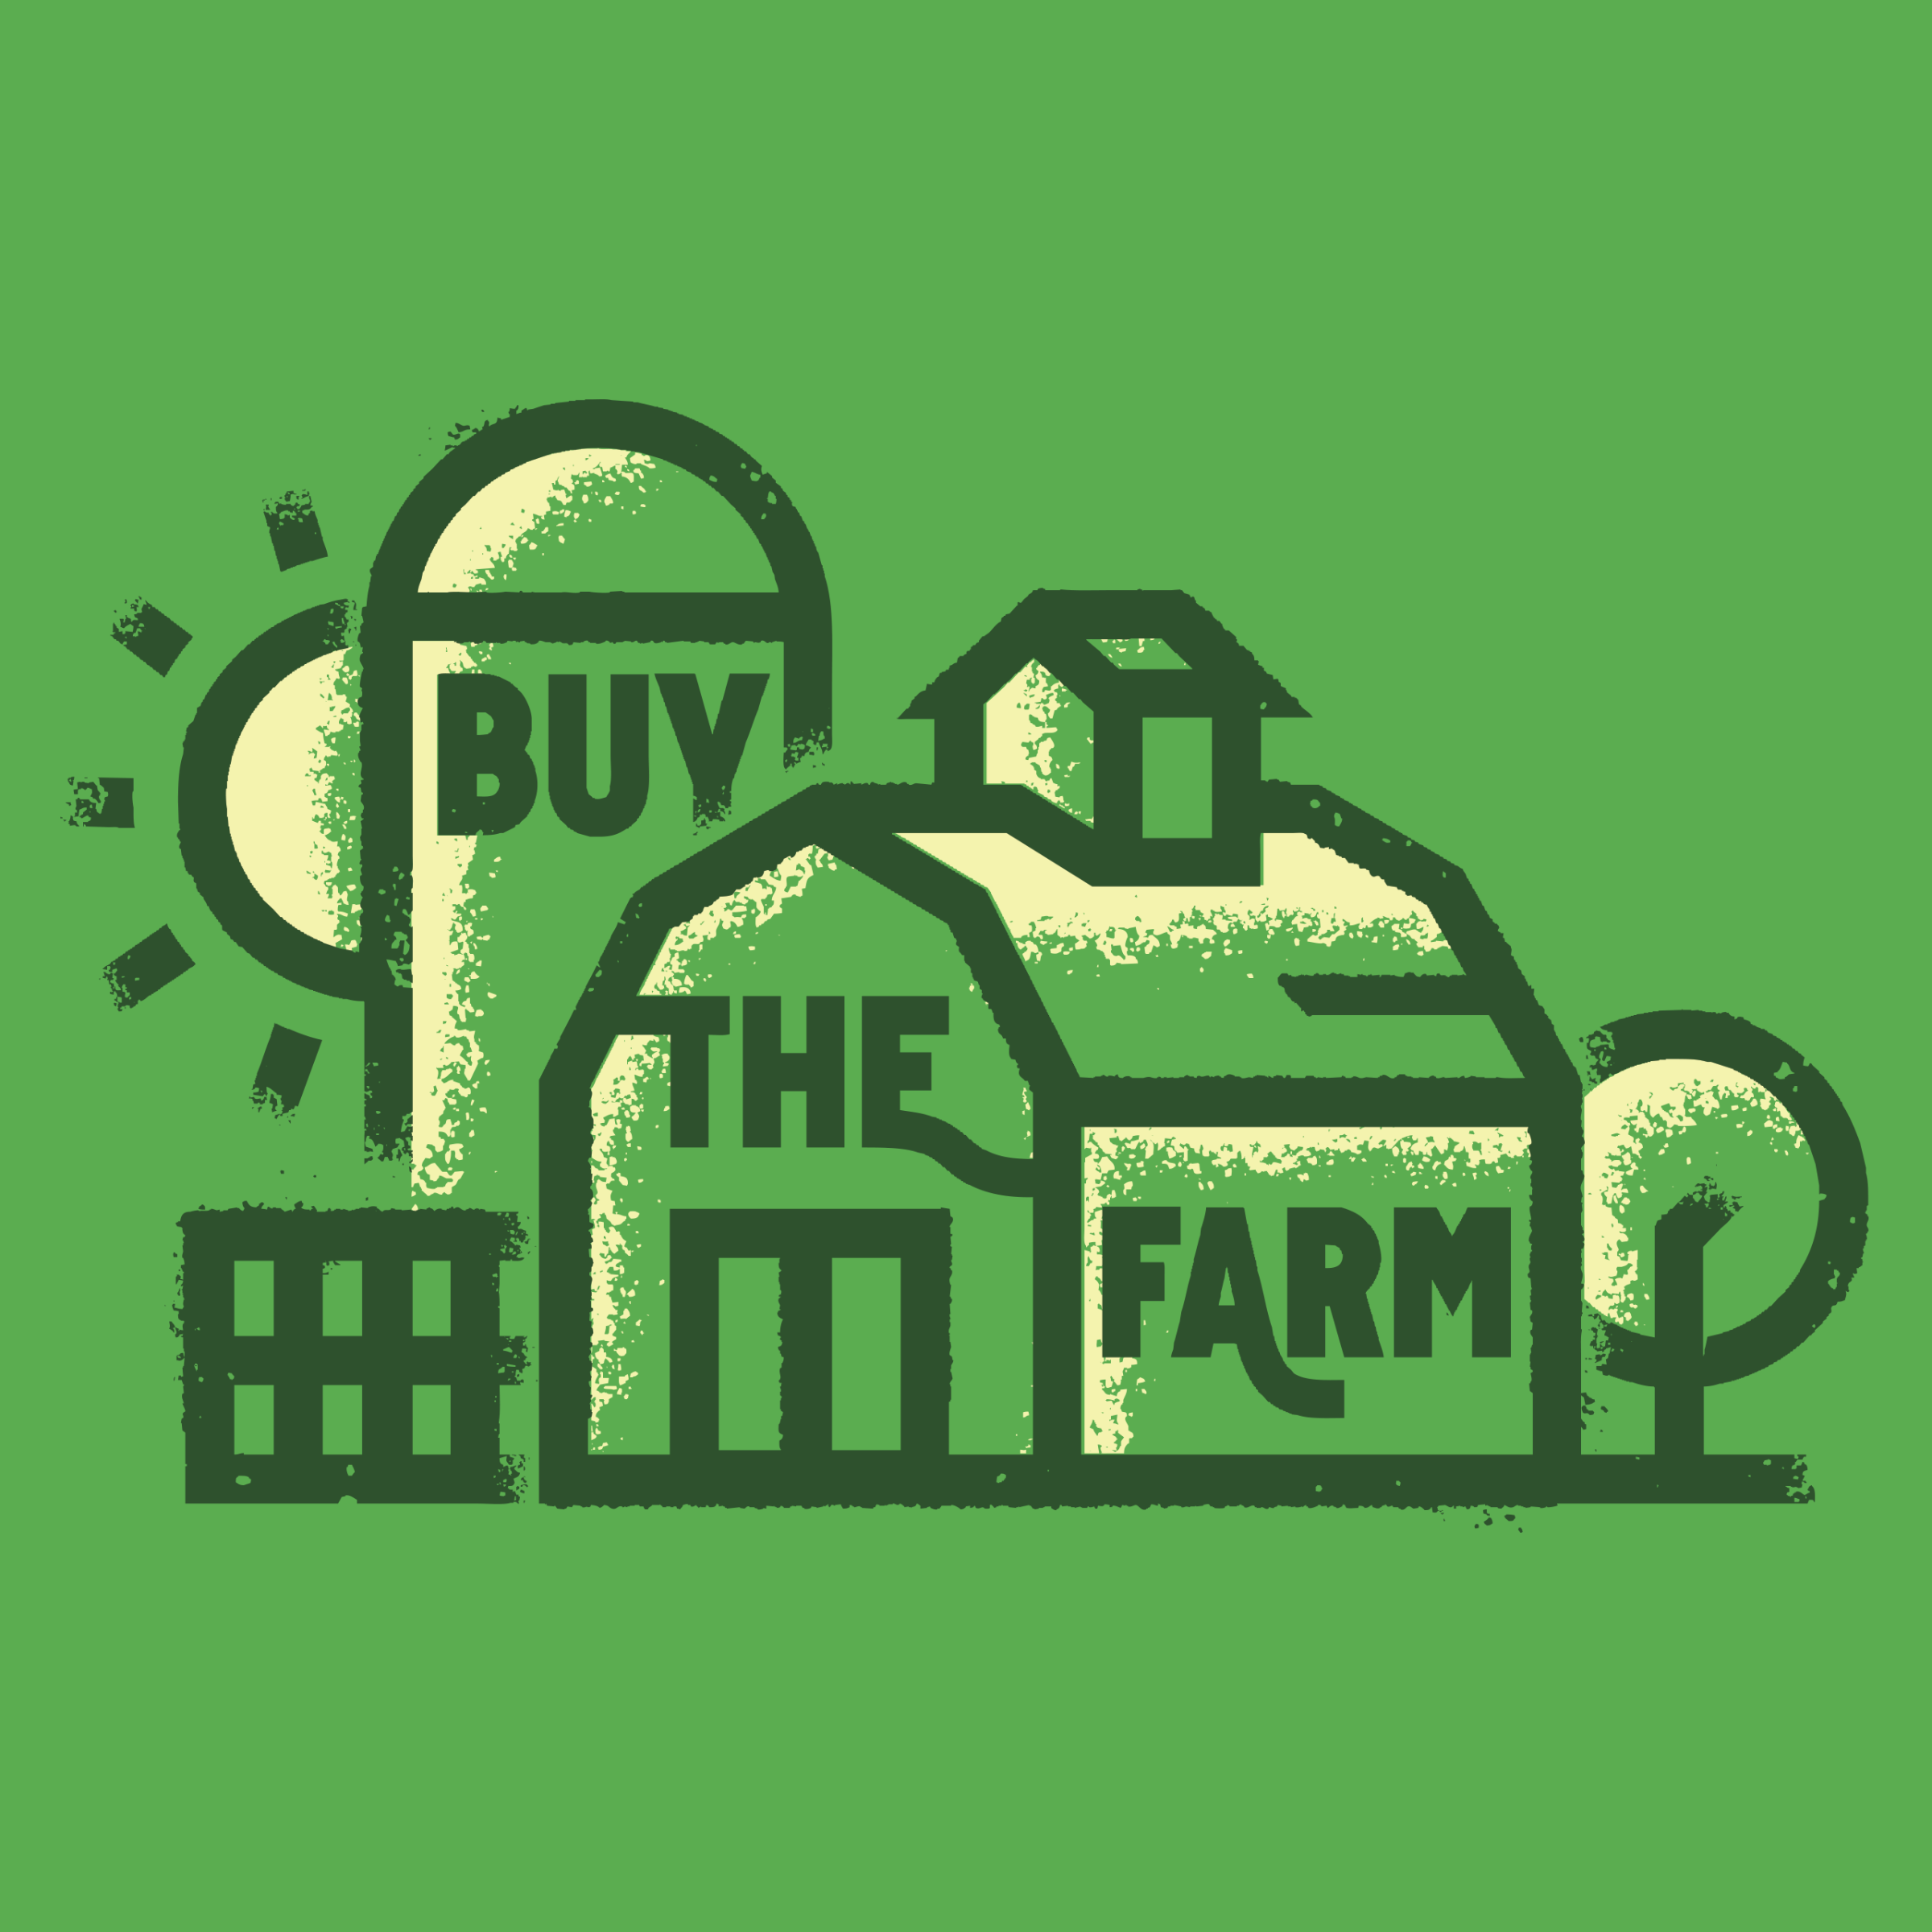 Buy the Farm. Detail